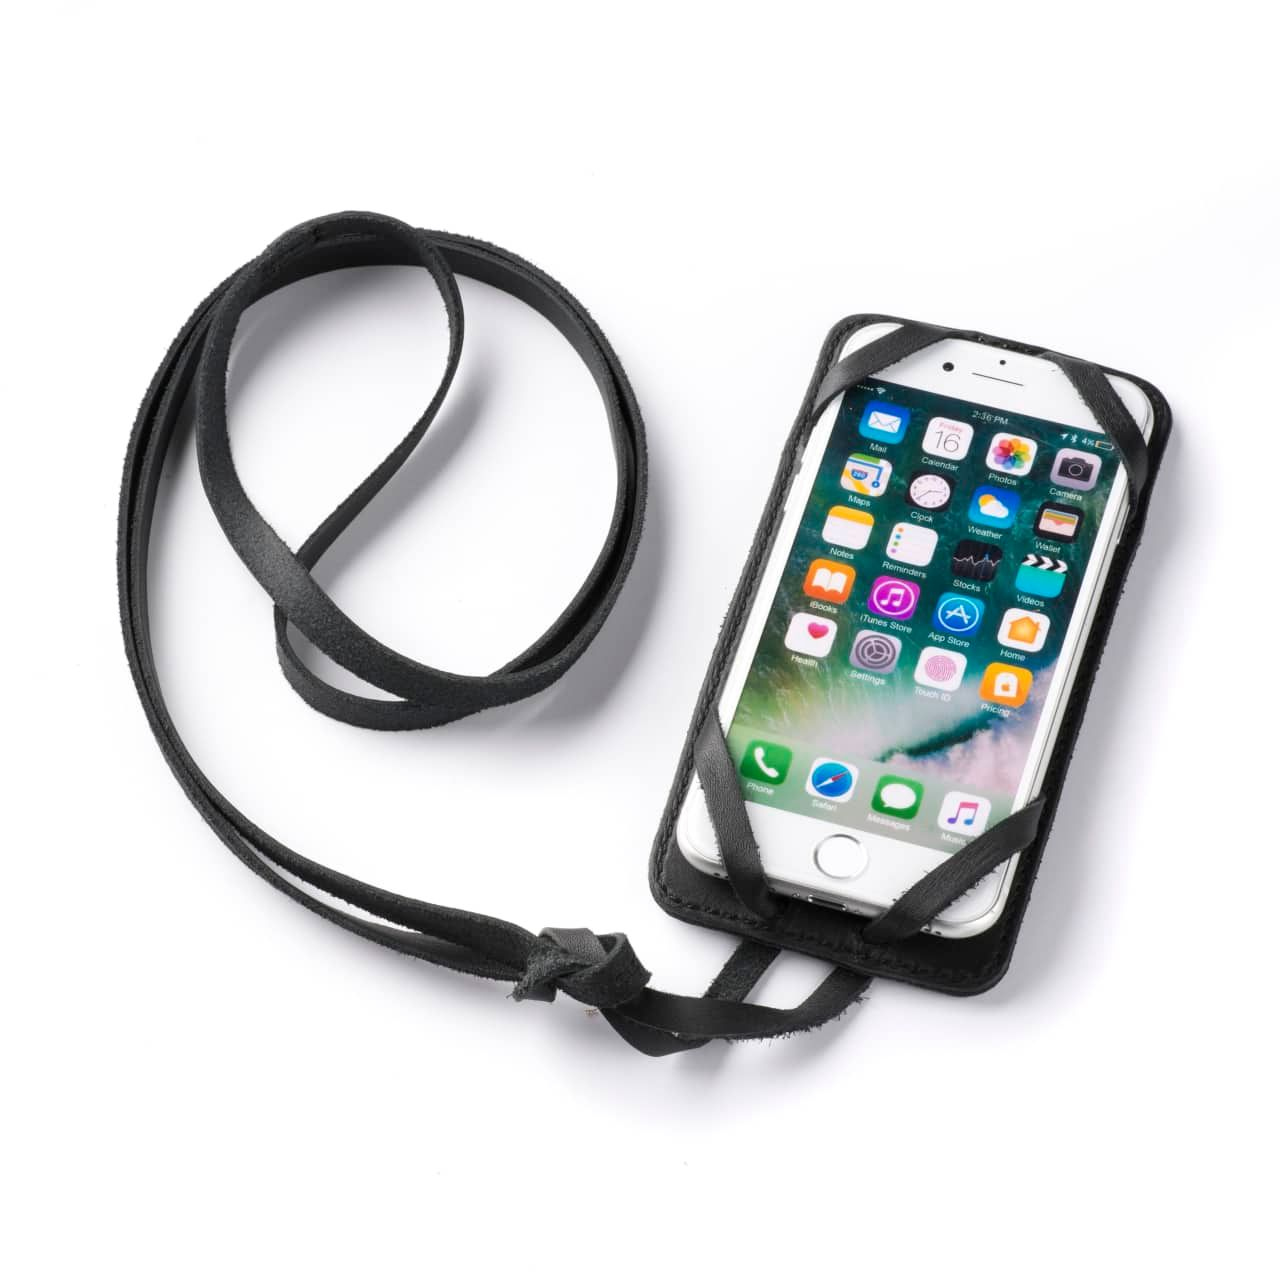 Leather iPhone 8 Case in Color Black with the Lanyard attached front angle with phone in the case